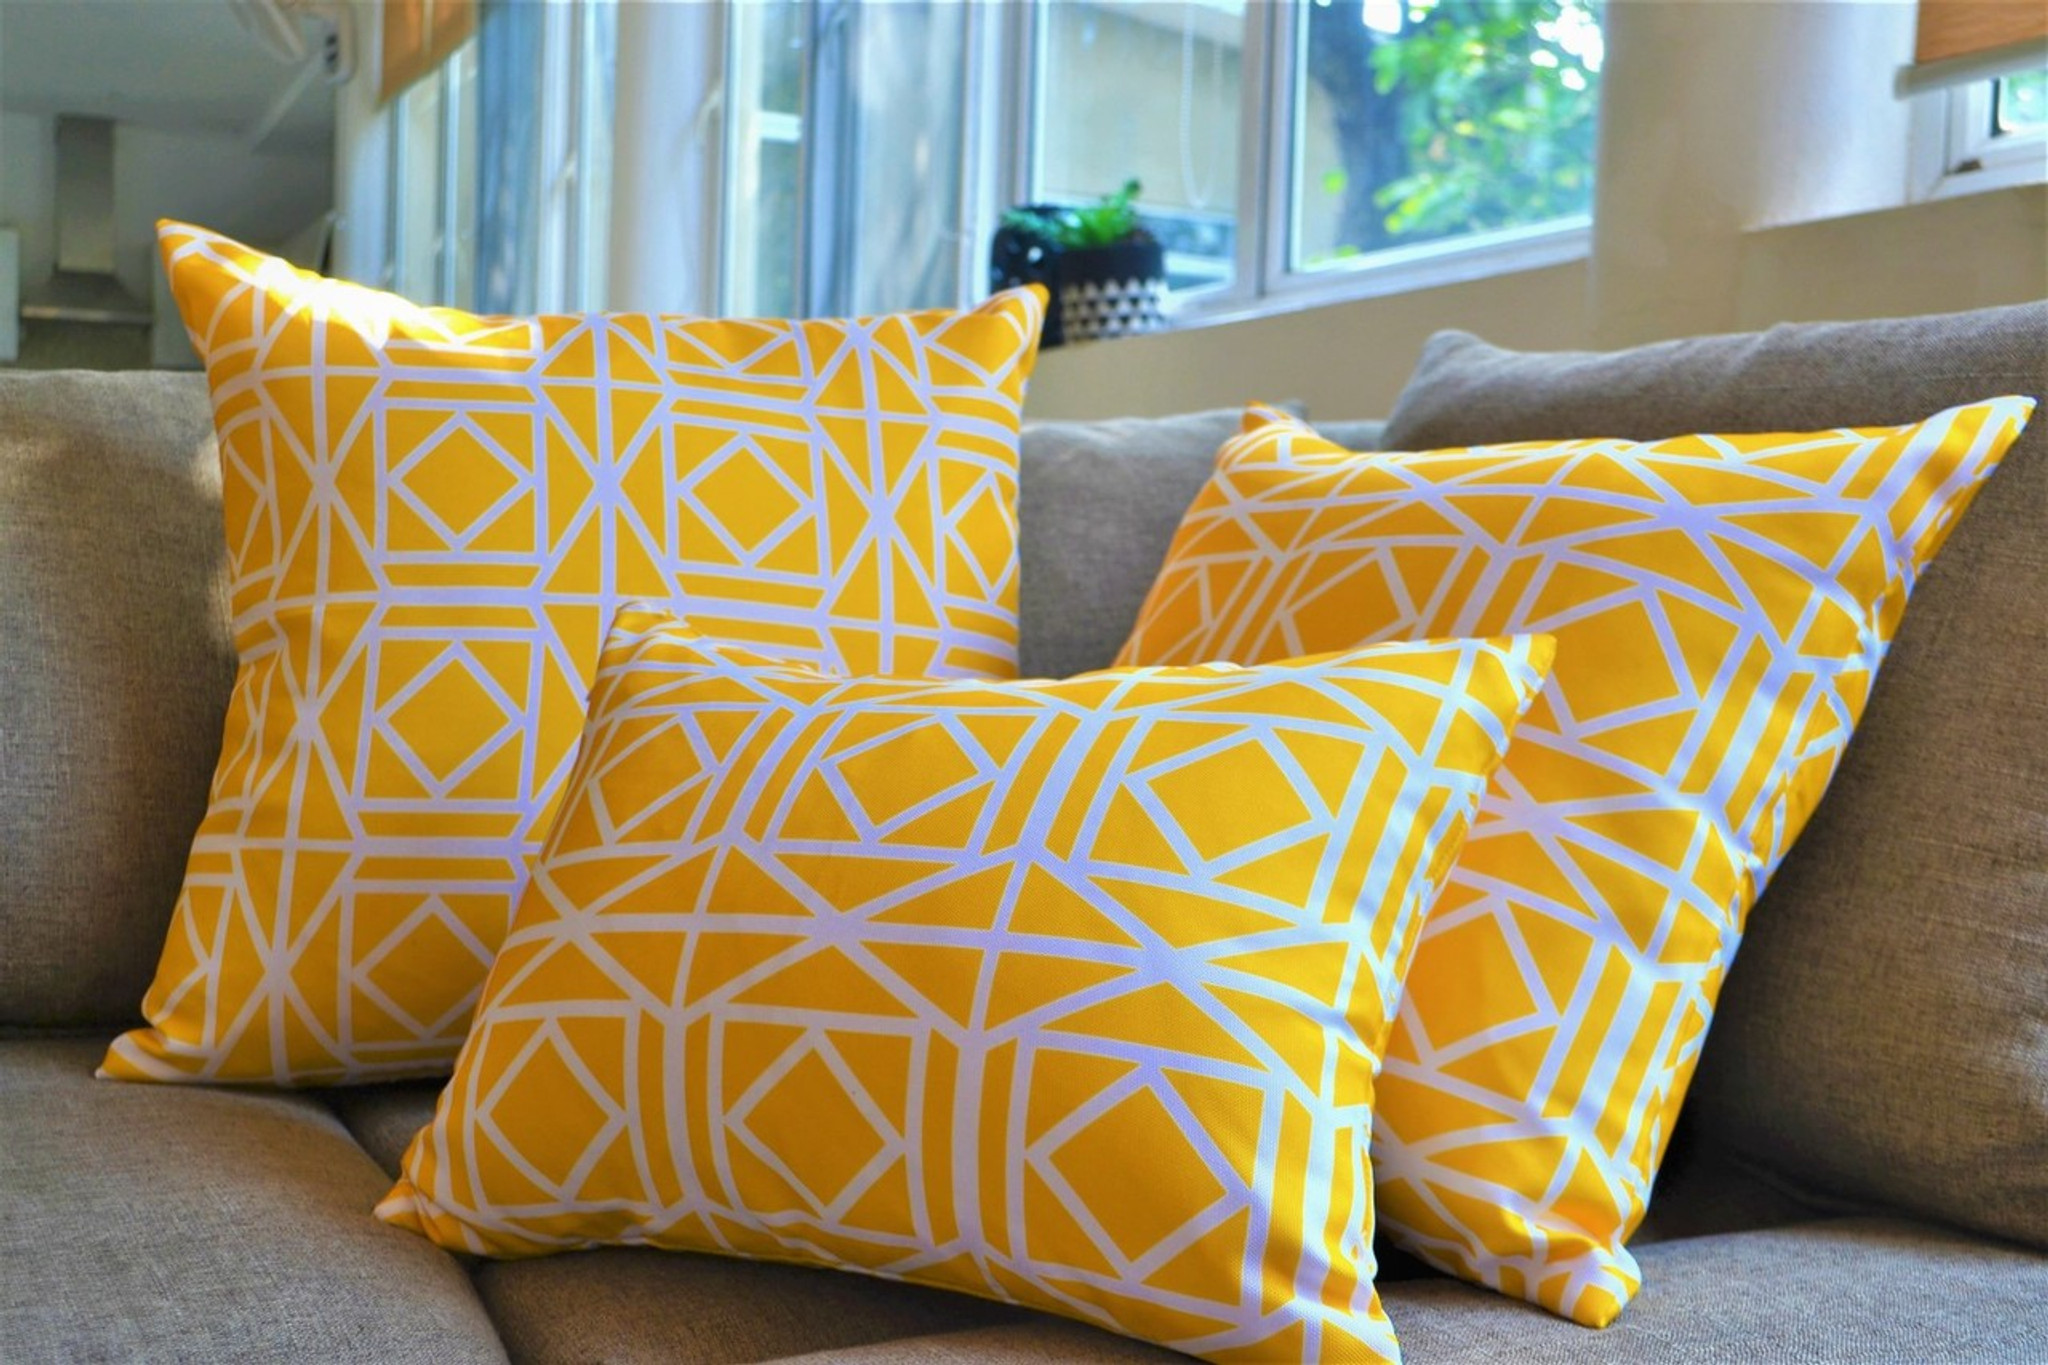 Yellow Waterproof Outdoor Cushion Covers Patio Pillows Many Sizes